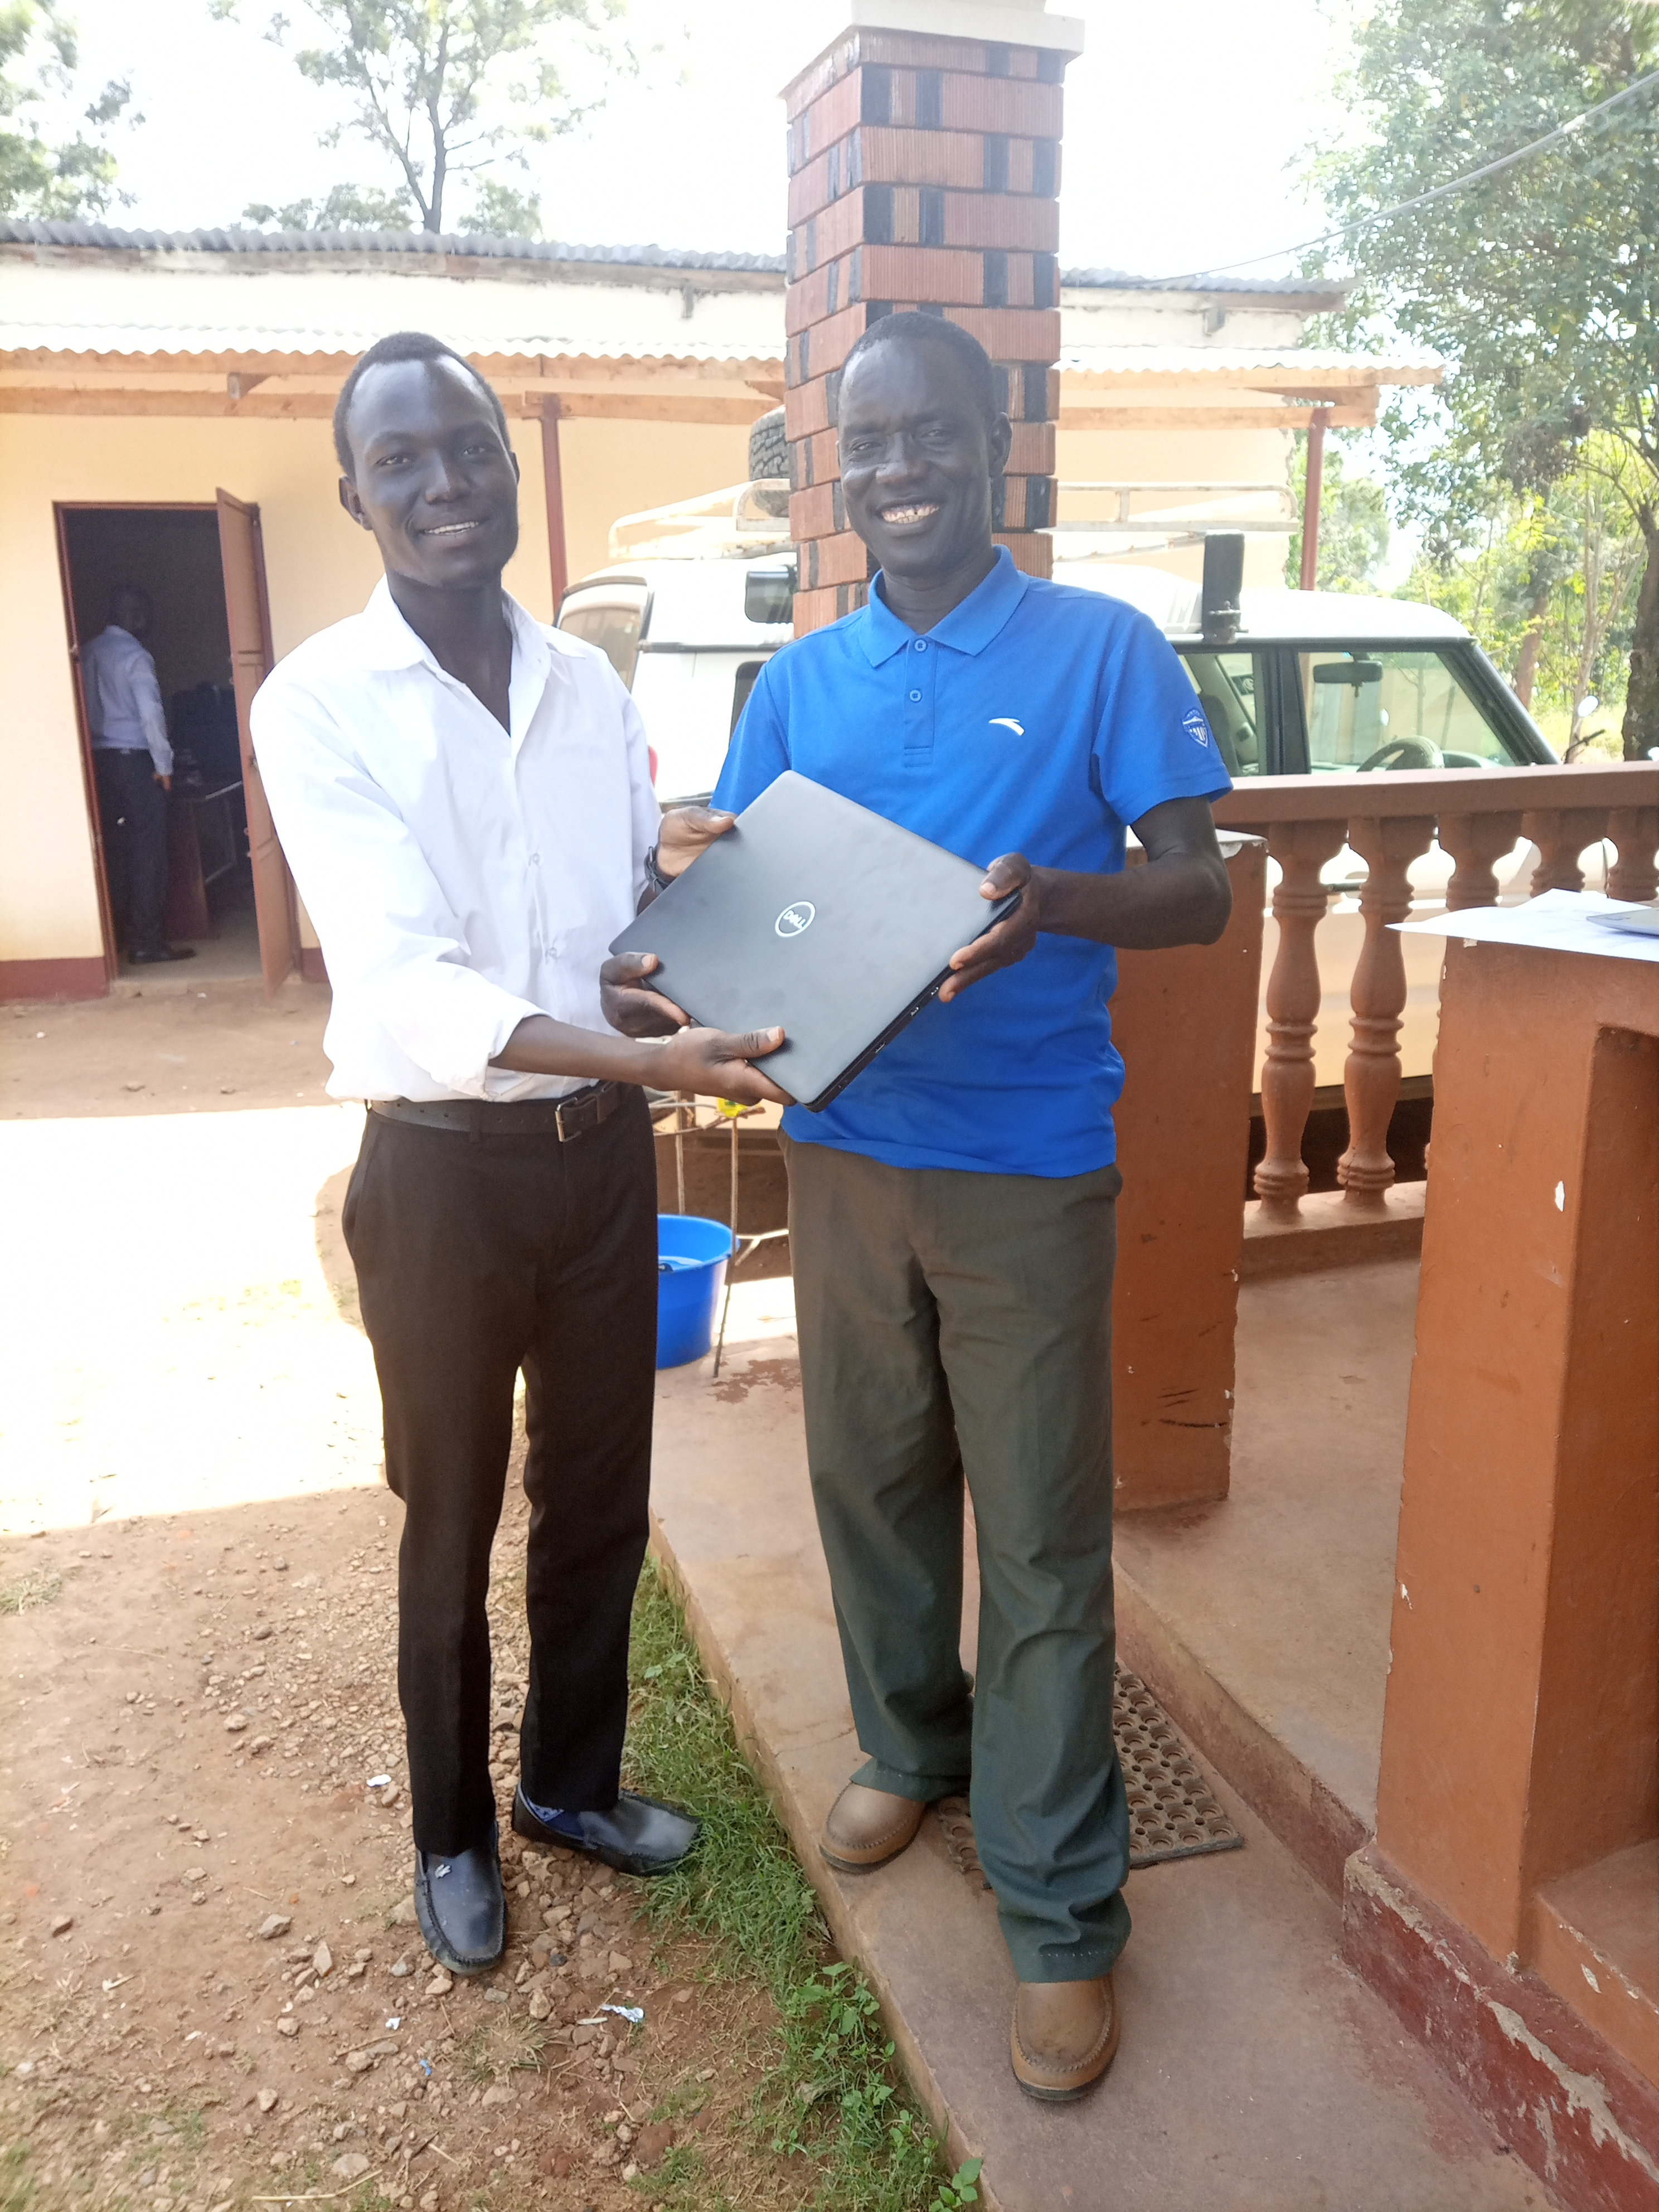 Joel Receiving the new laptop for Jesus film ministry